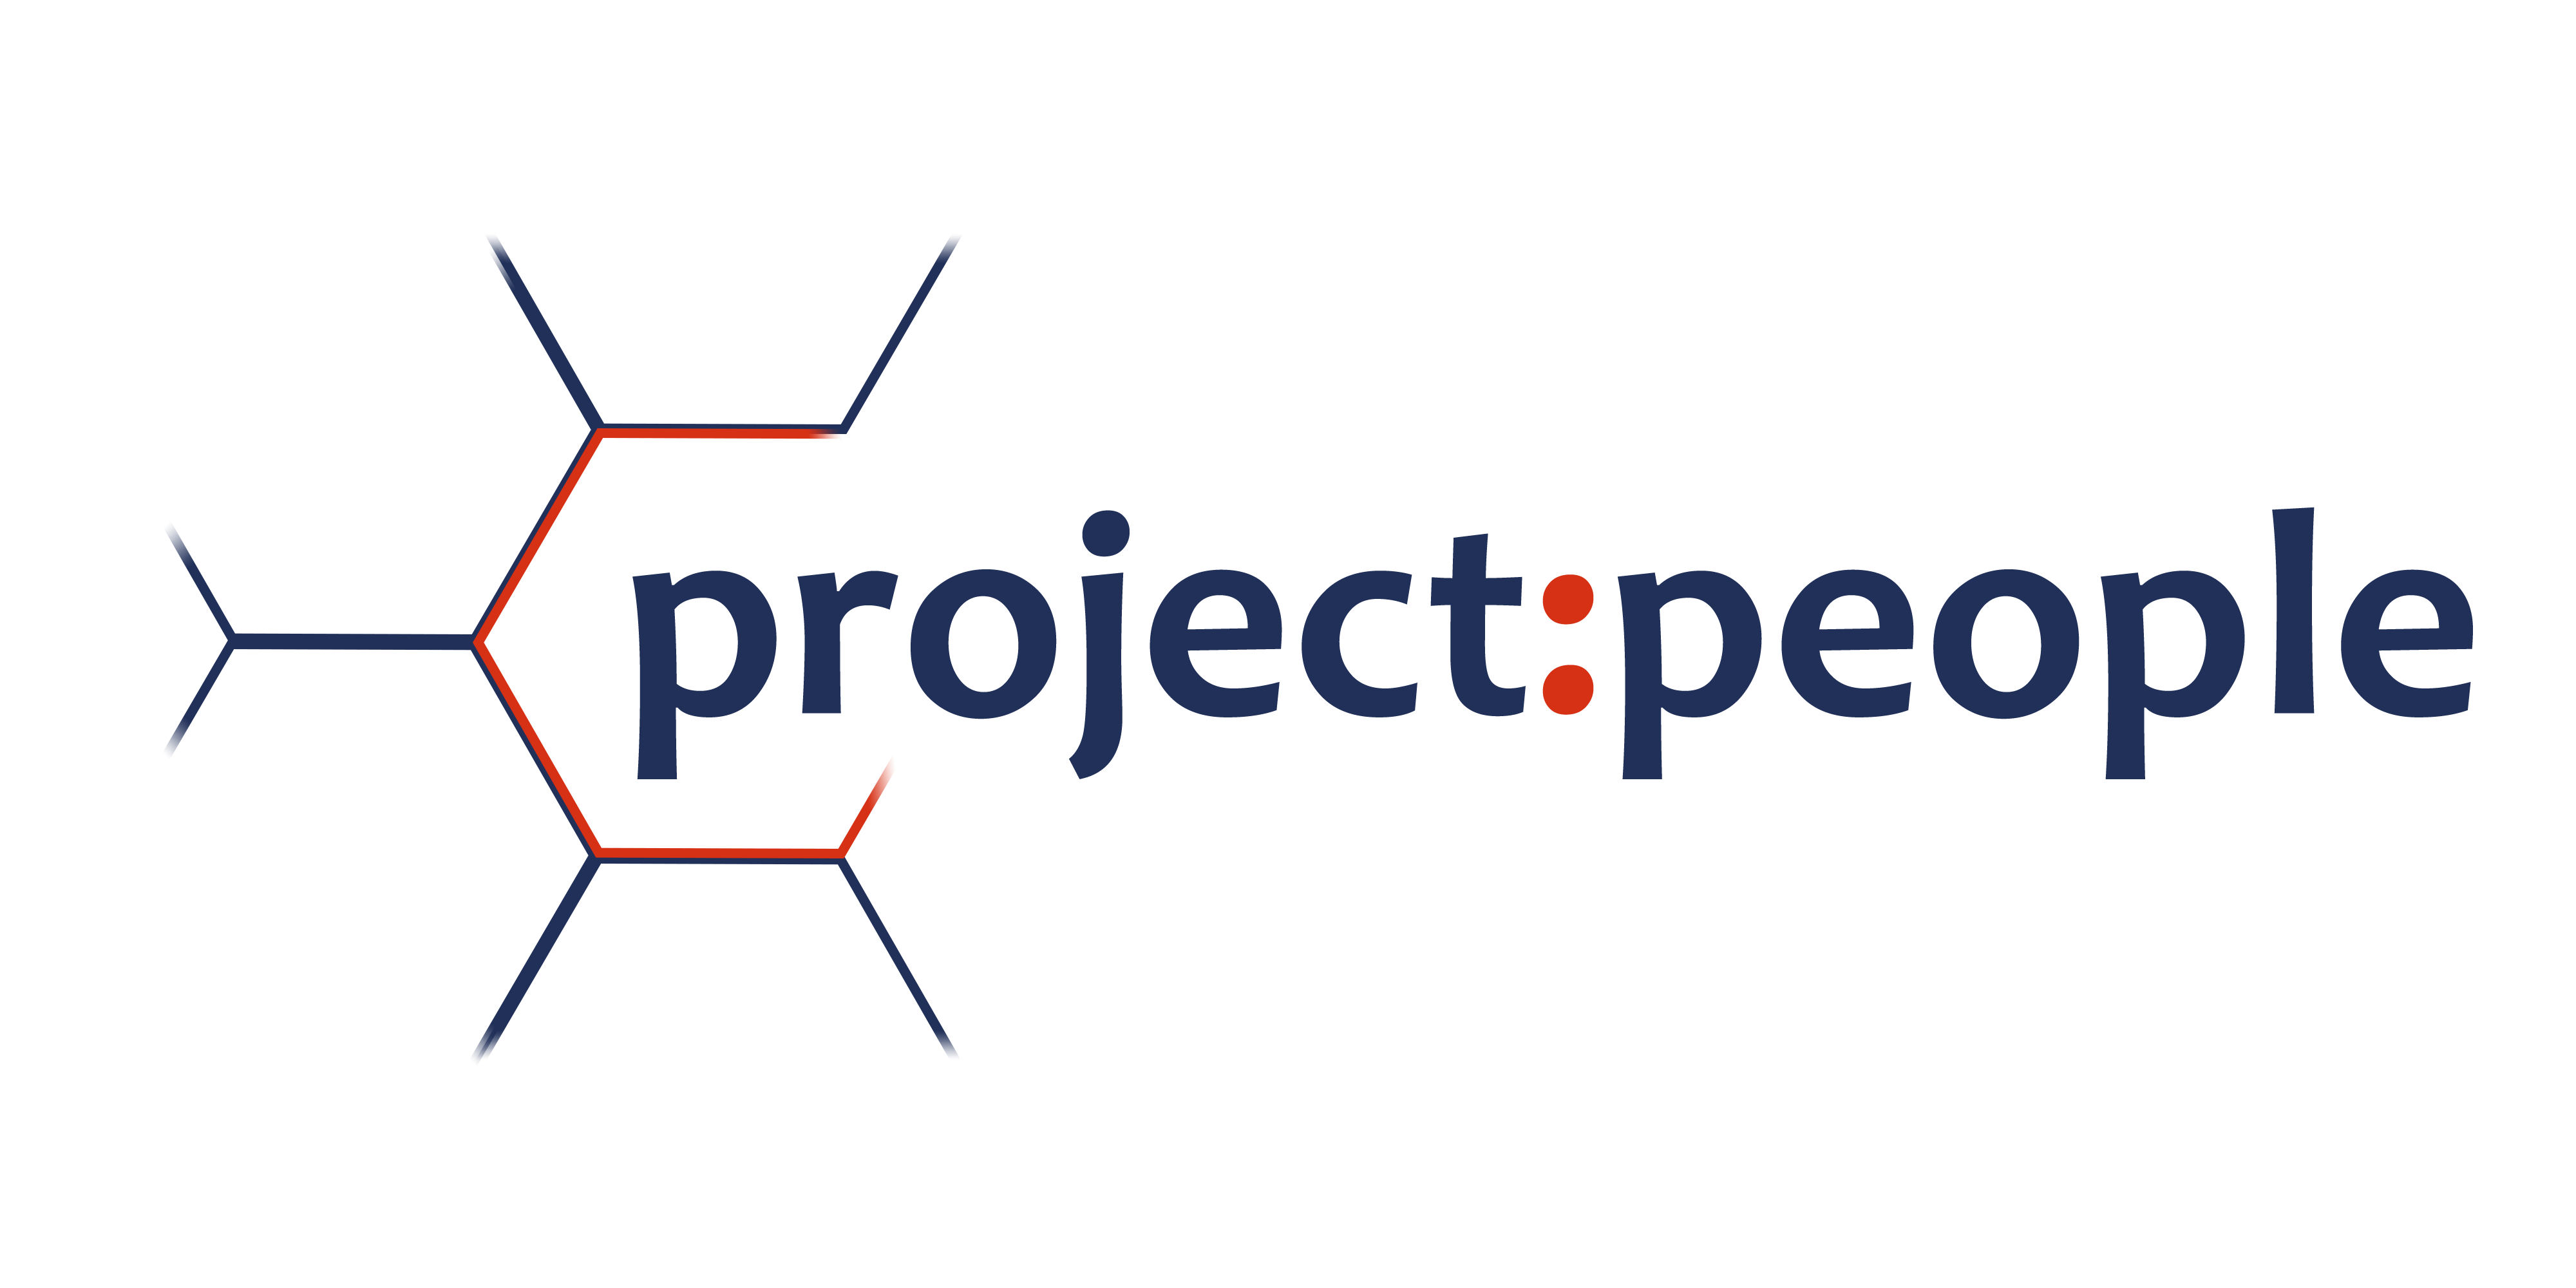 project:people